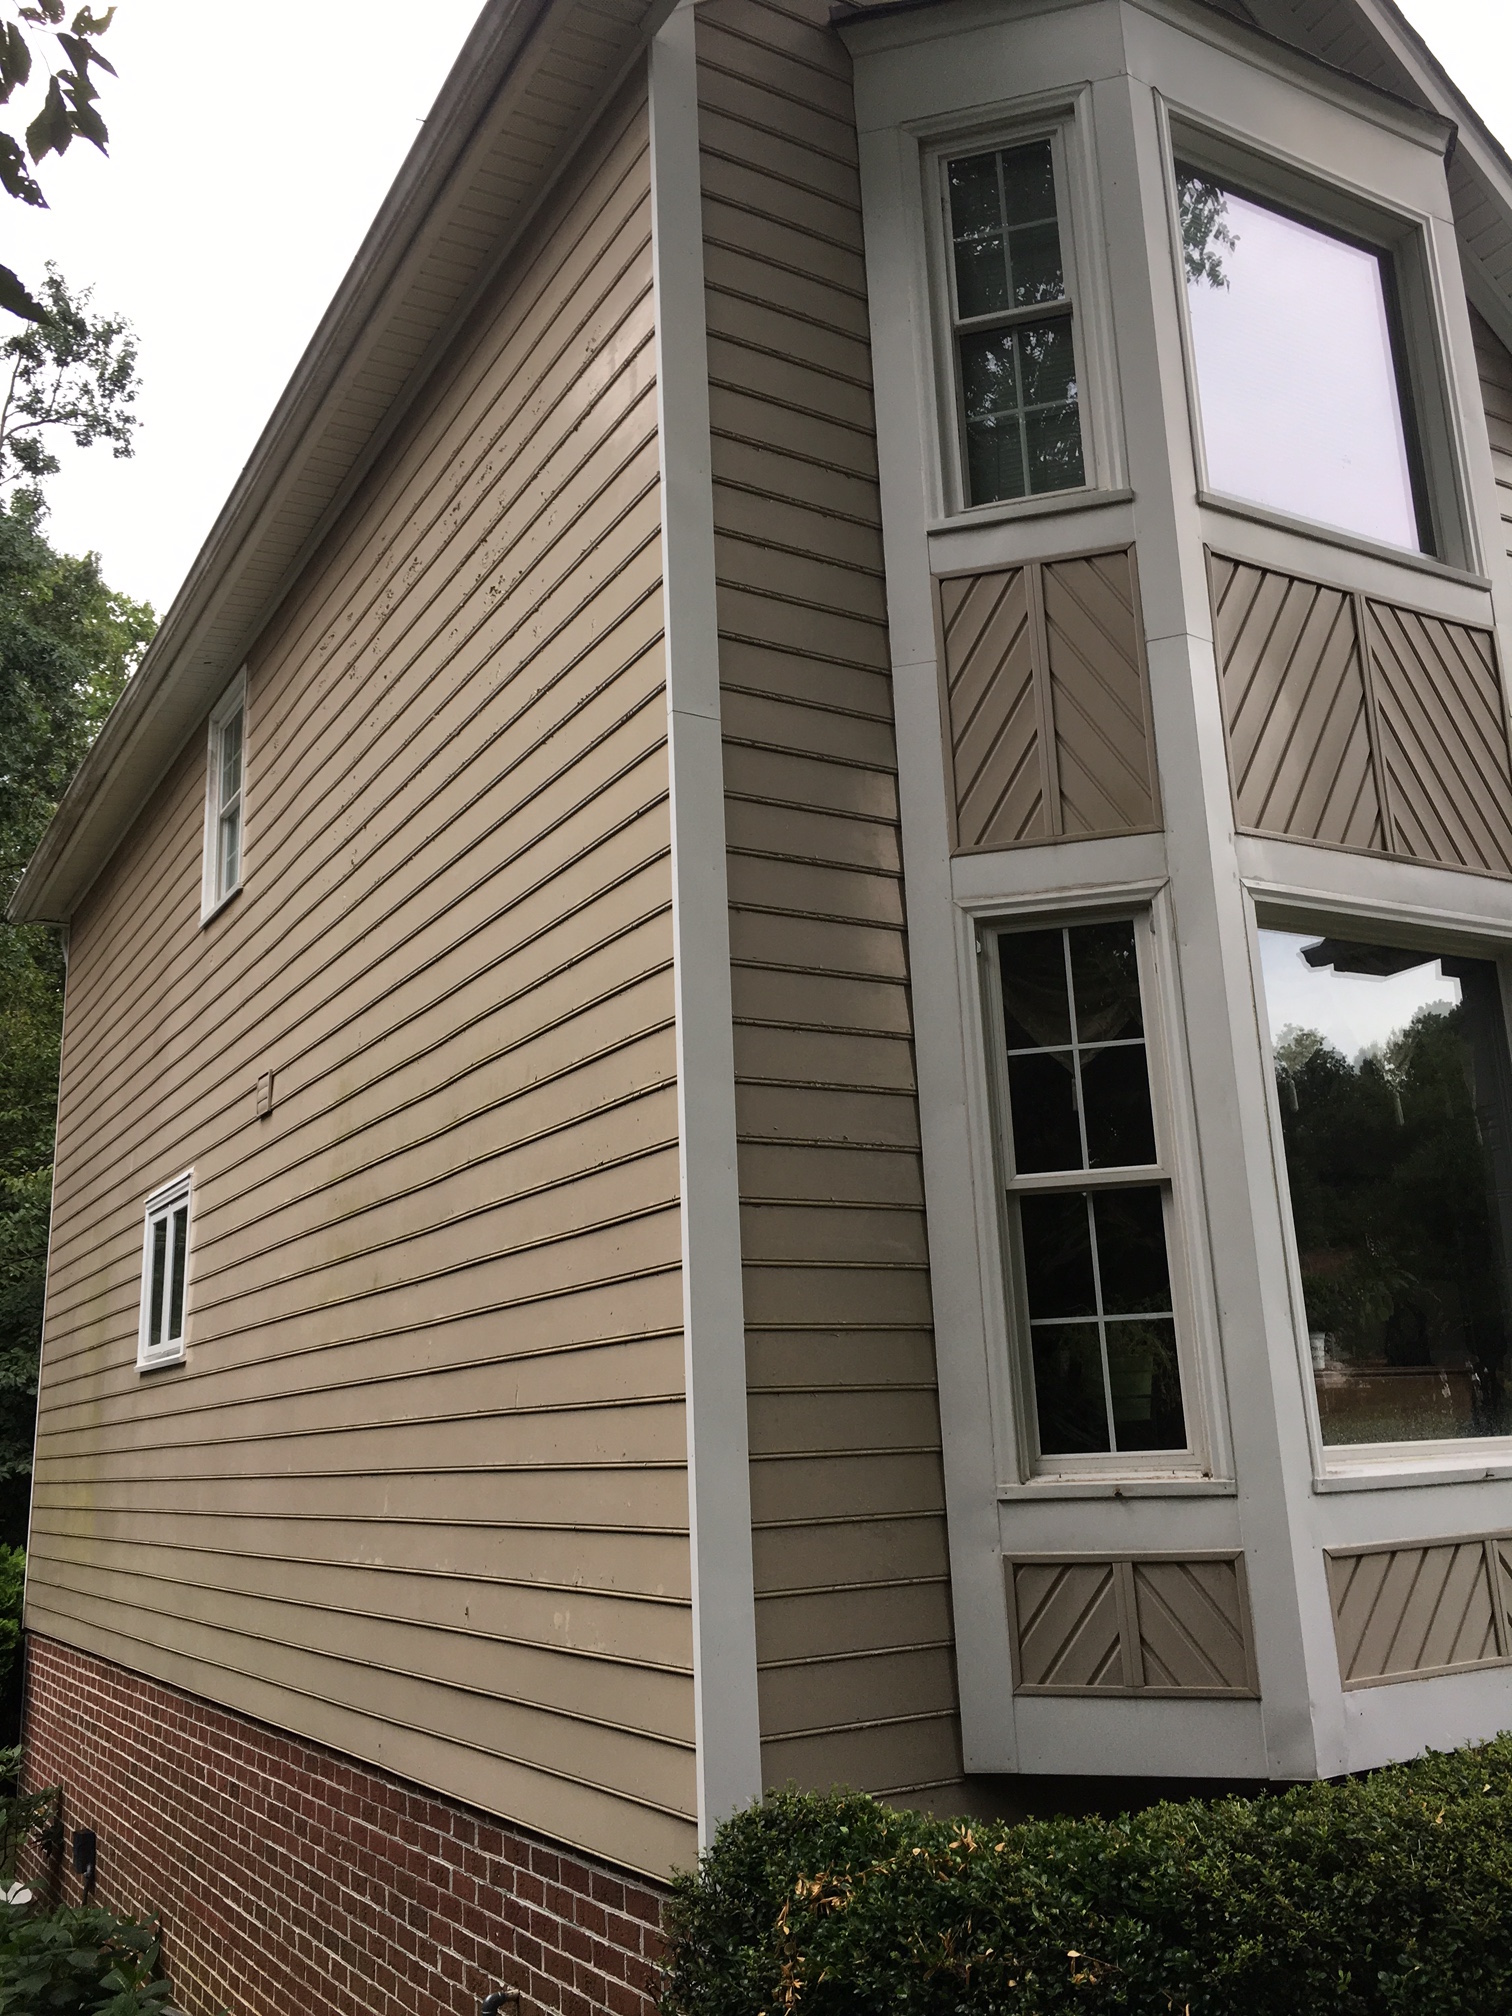 How to tell if i have masonite hardboard siding and what